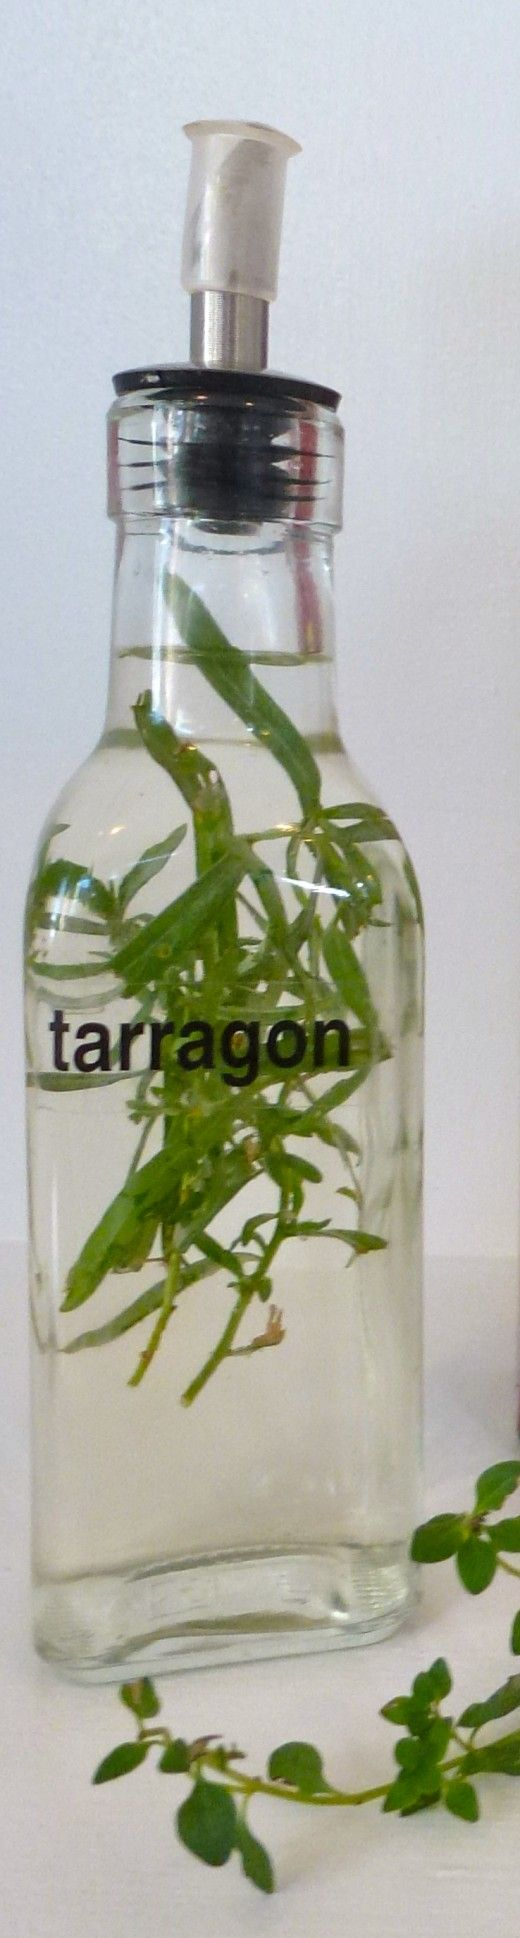 """Start with the best wine vinegar you can afford. Your """"secret"""" recipe tarragon vinegar will receive rave reviews."""